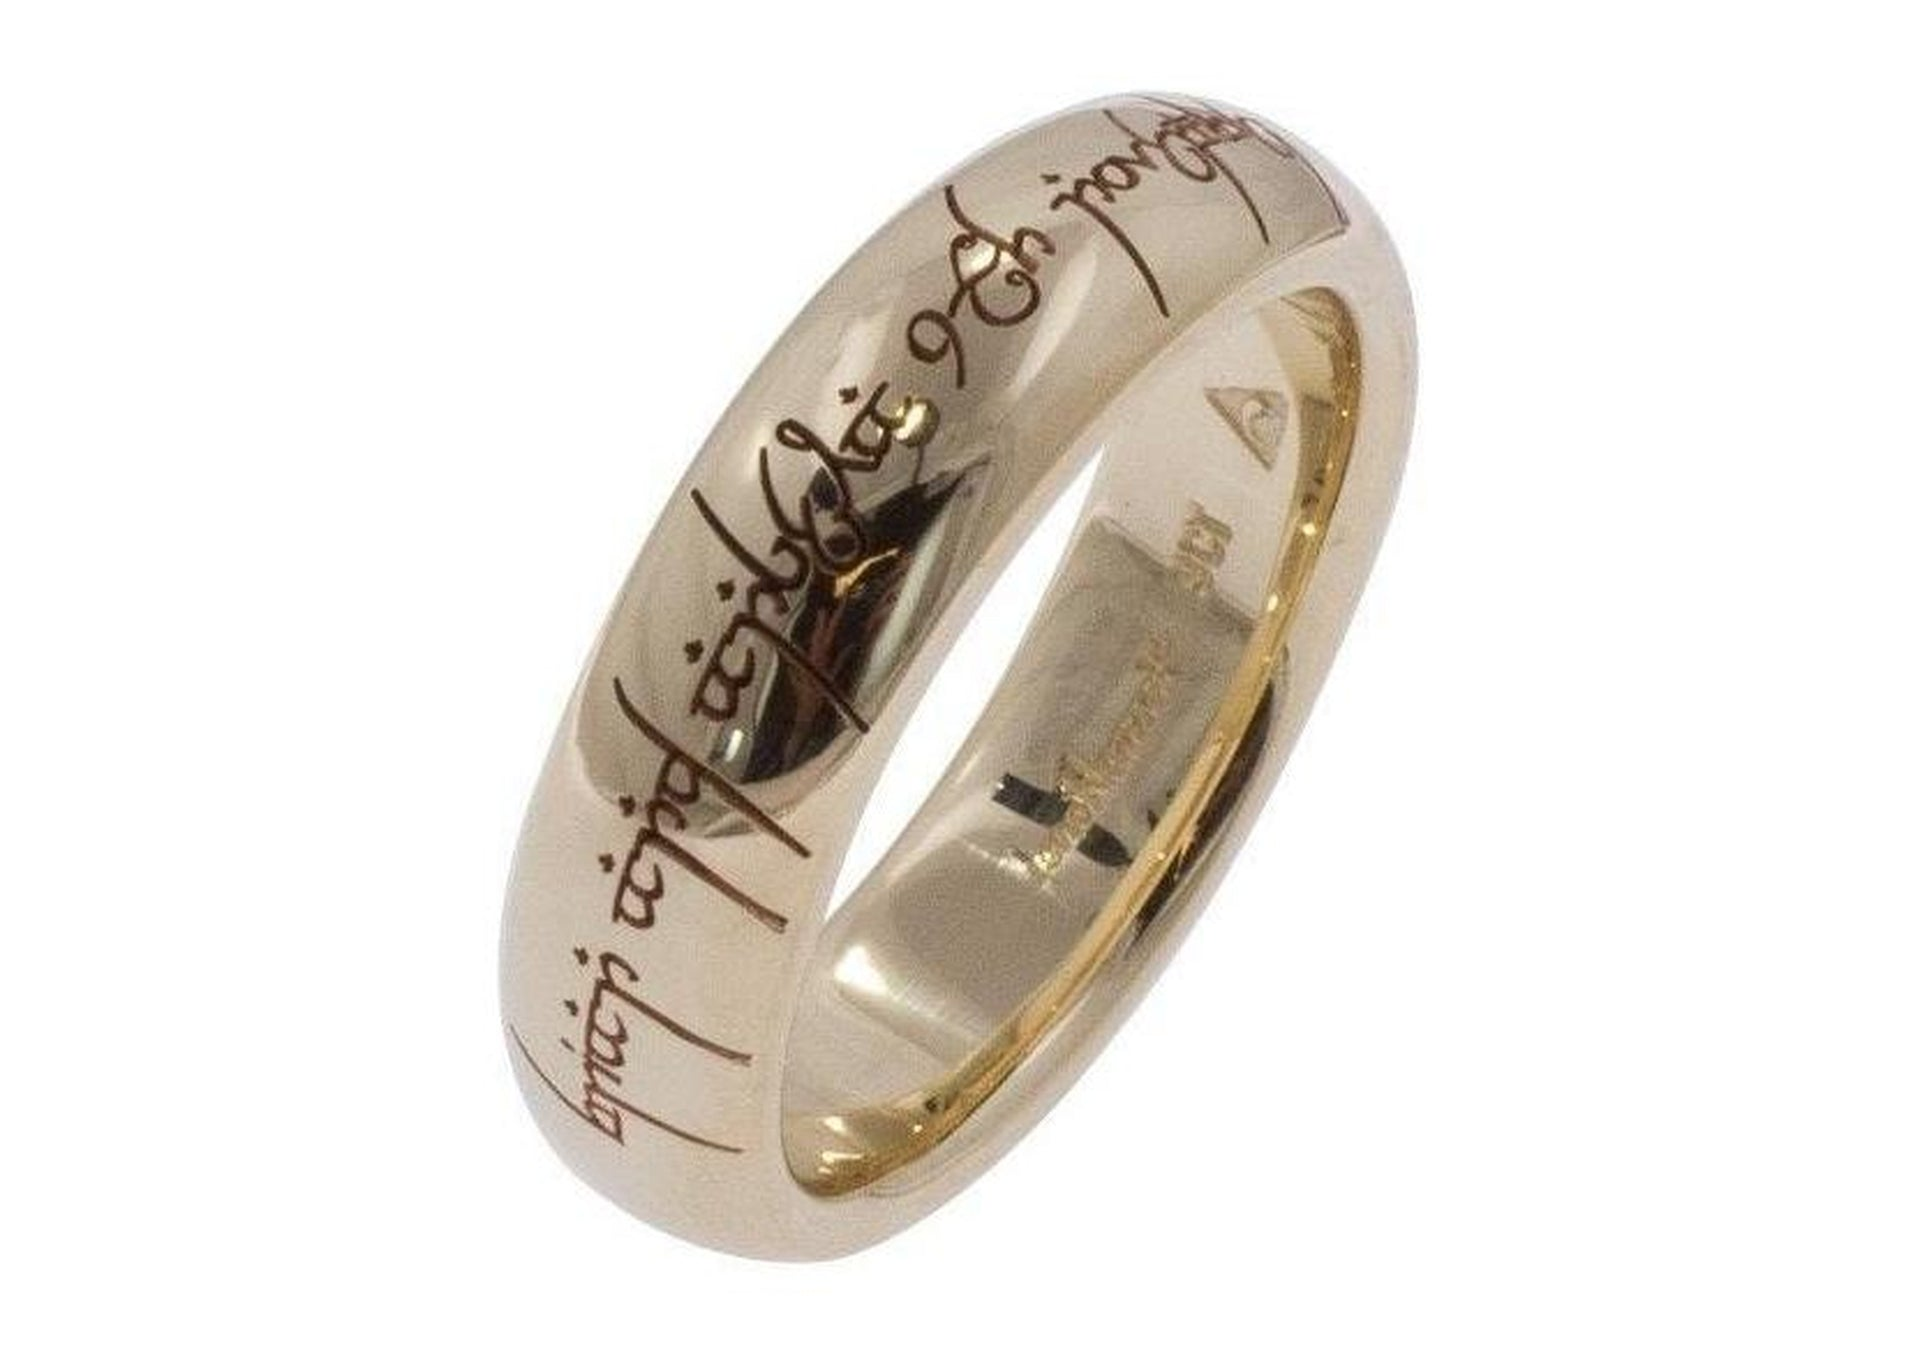 Single Sided Custom Laser Ring Engraving   - Jens Hansen - 1